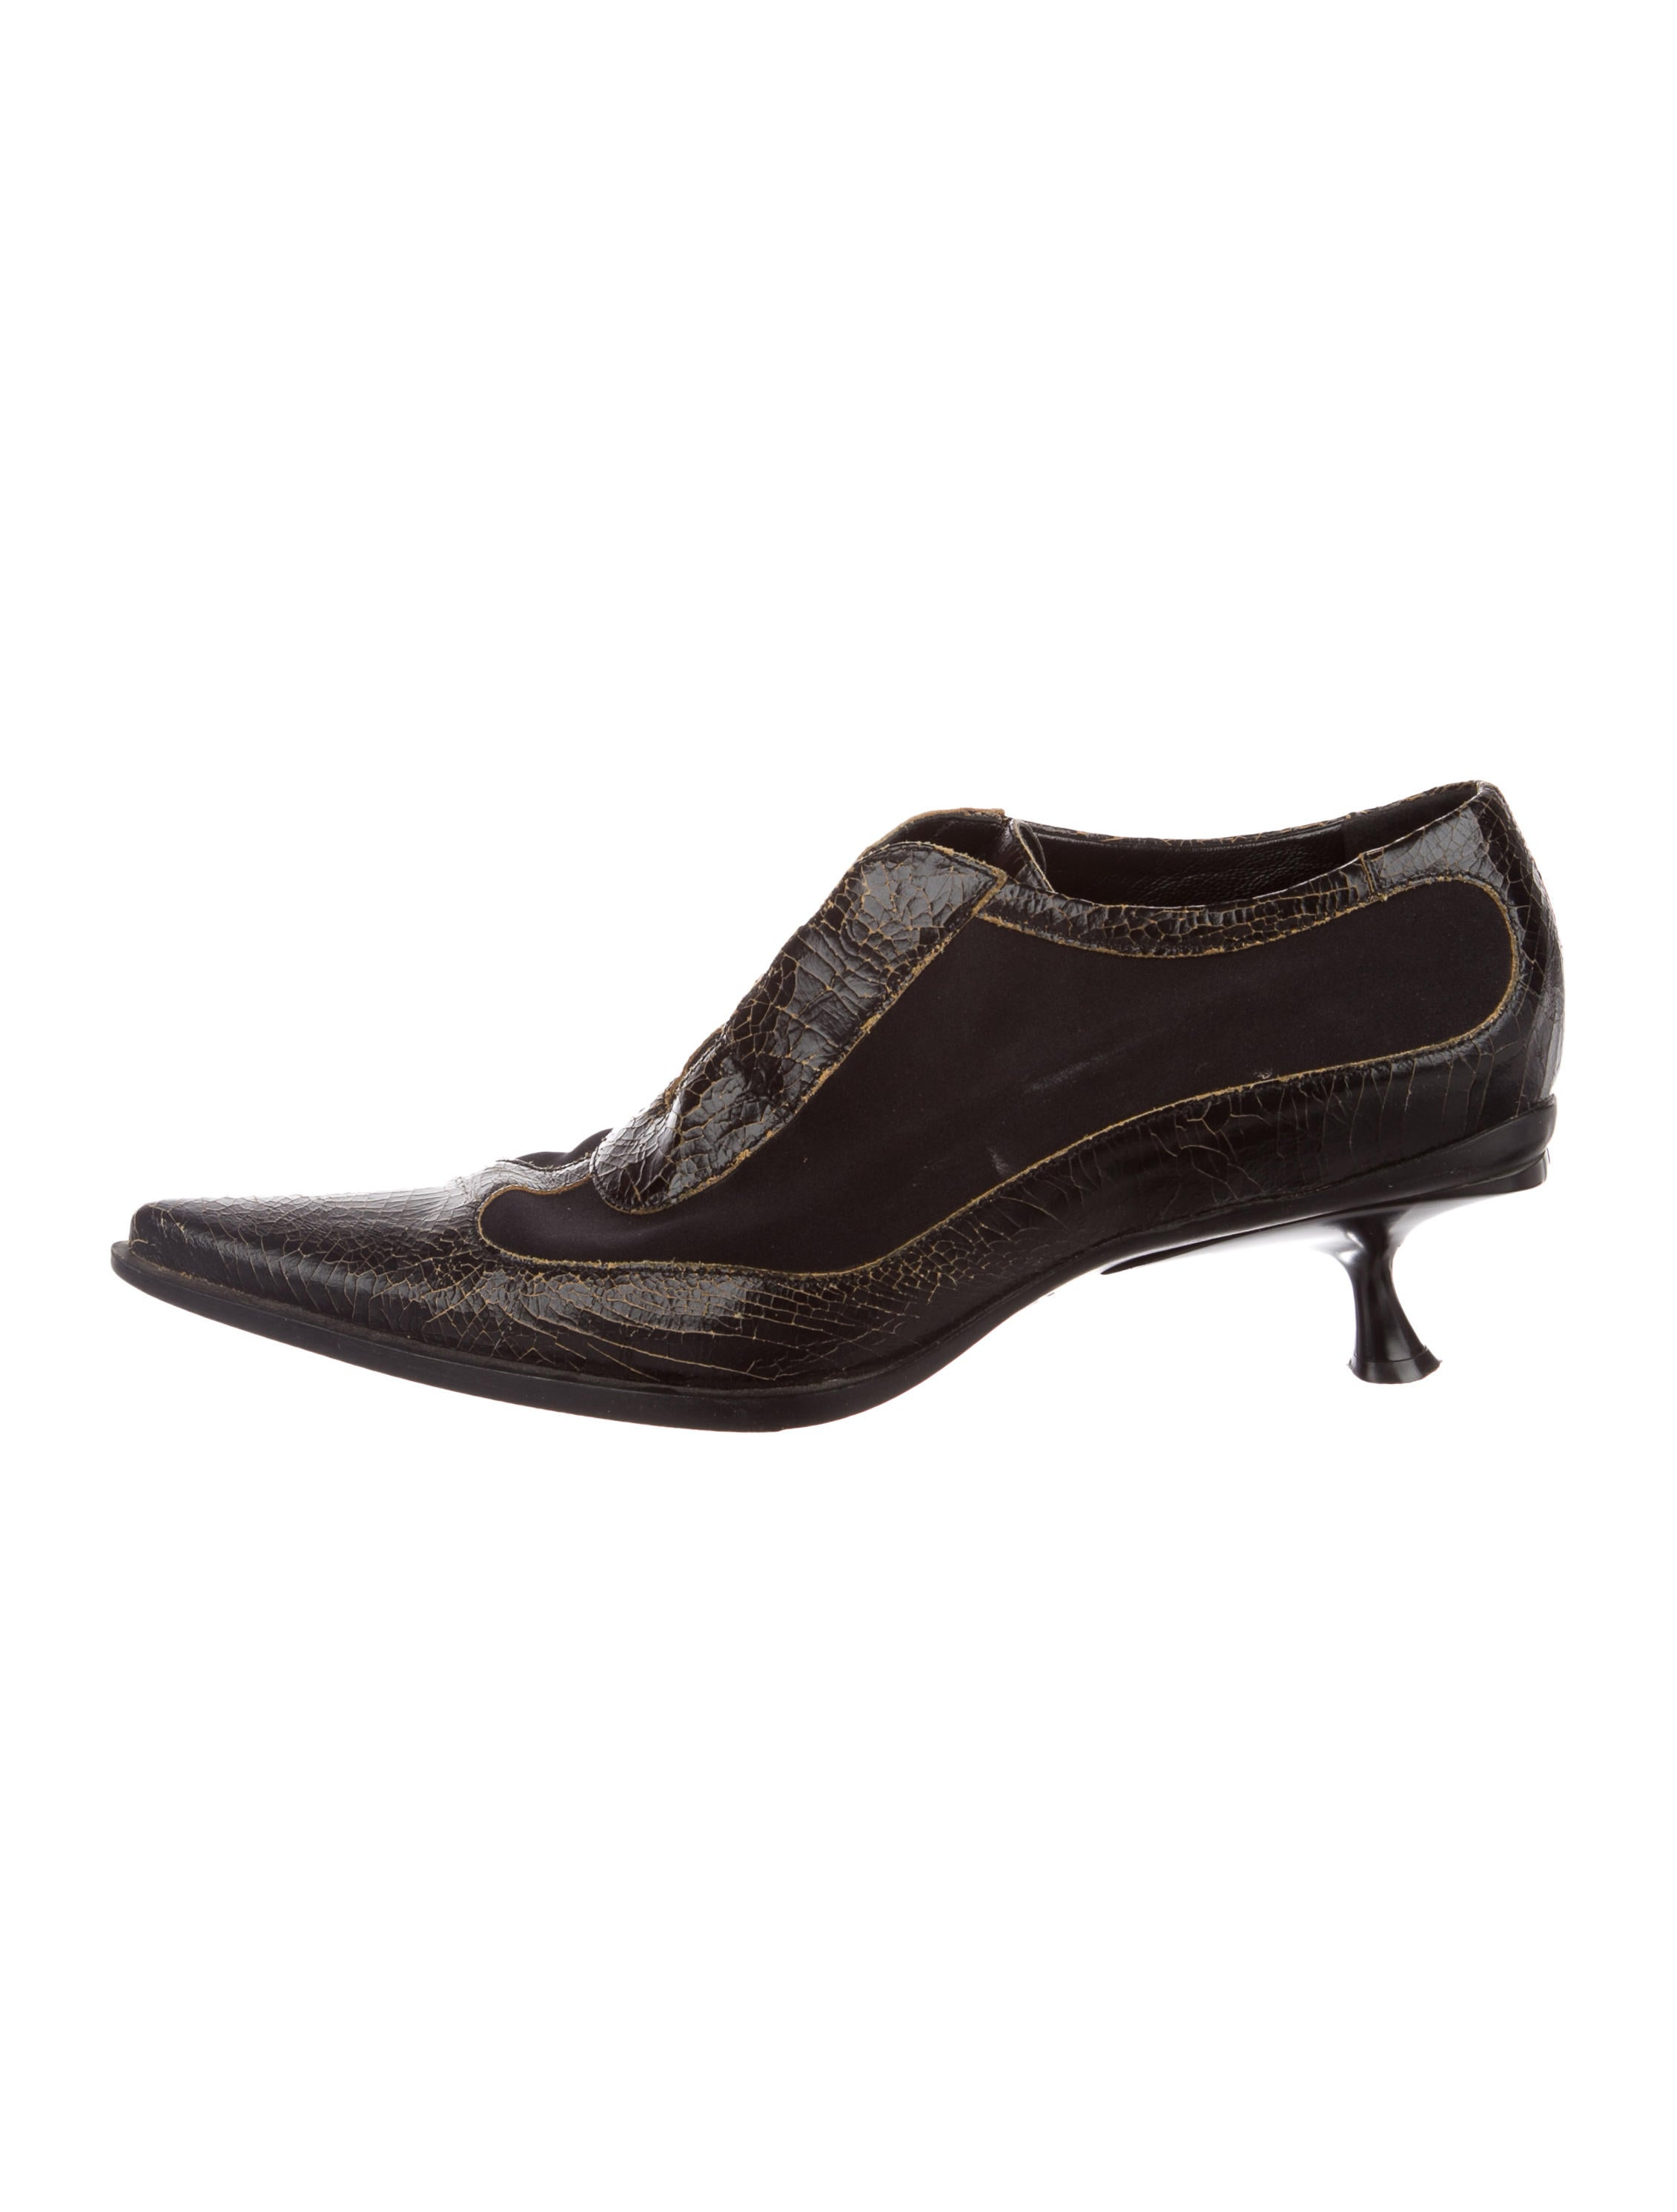 shopping online cheap price countdown package for sale Miu Miu Cracked Leather Oxfords buy cheap pay with paypal 8E193nM